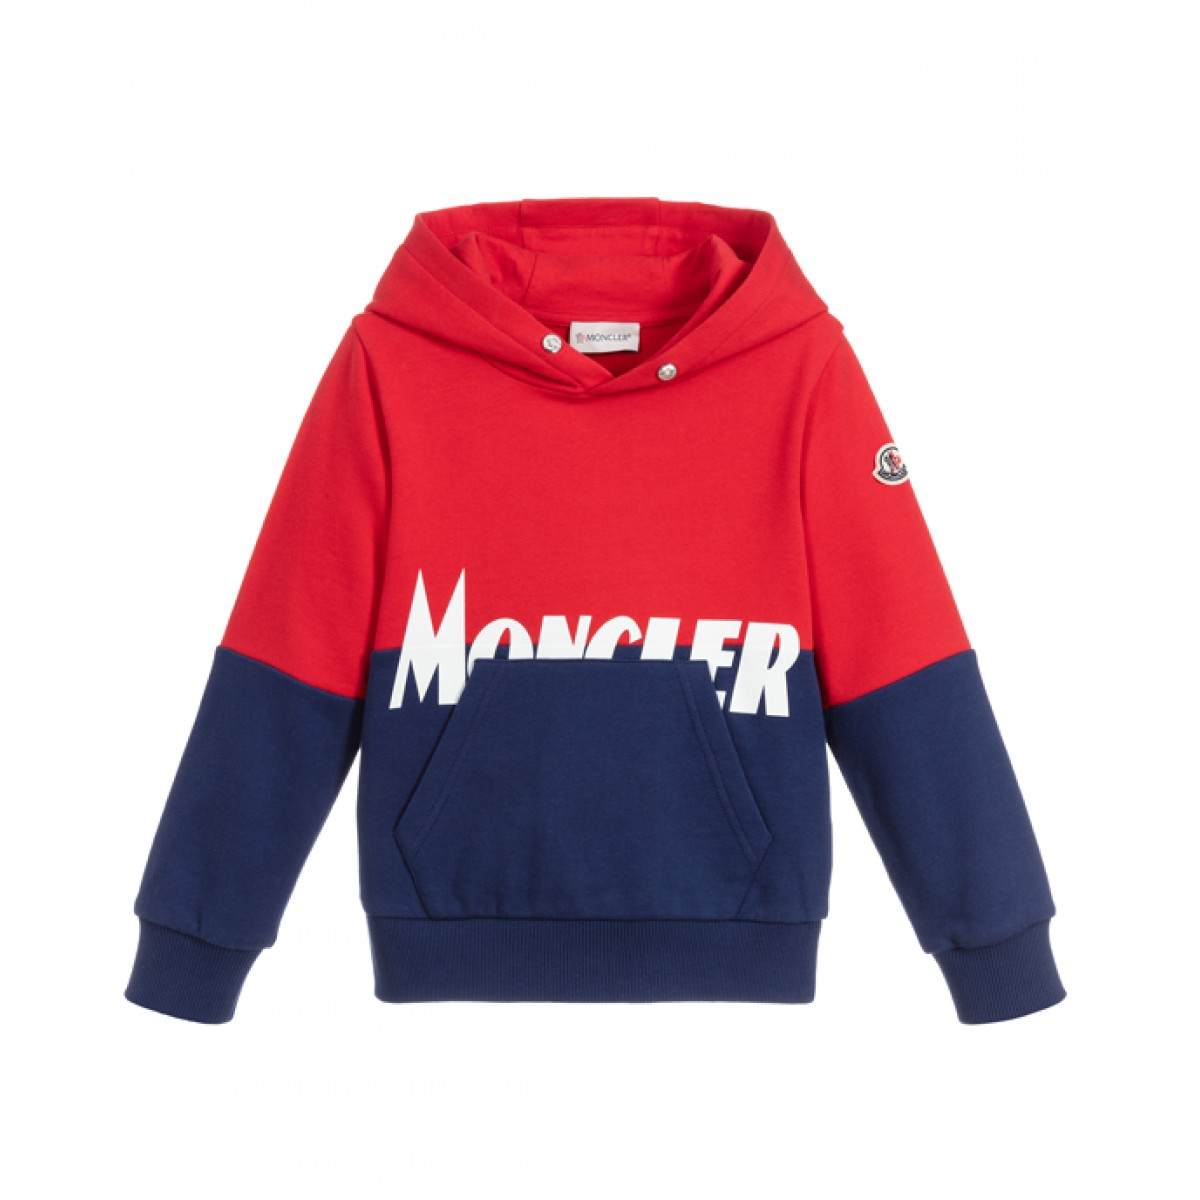 Hooded red and navy sweatshirt